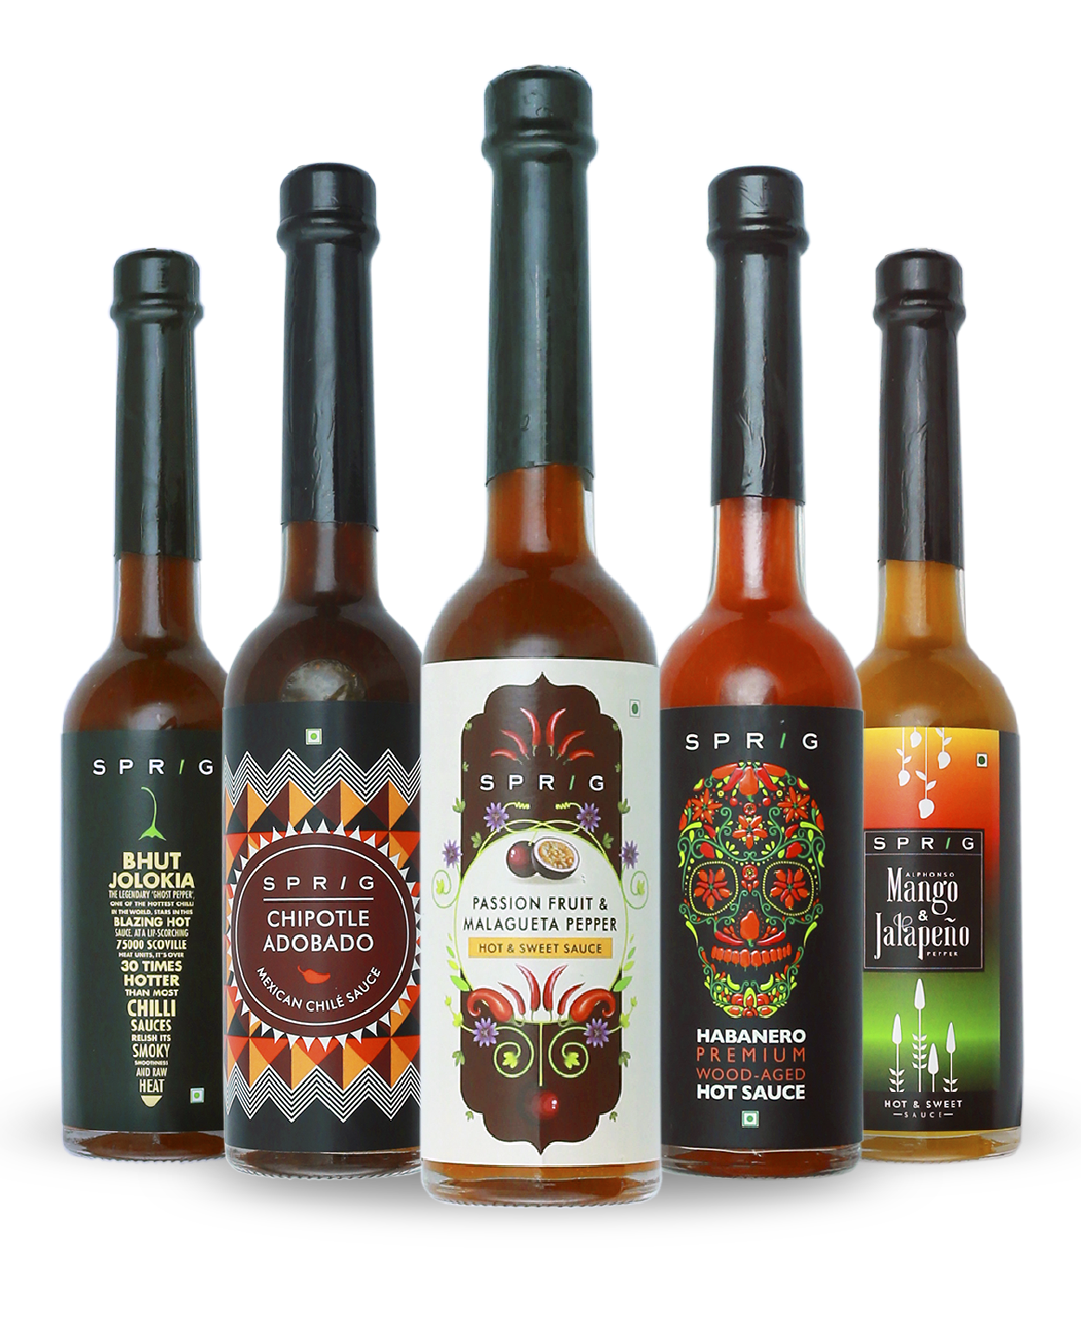 A range of Premium Sauces with award-winning flavours from around the world. Take your pick from Habanero Hot Sauce, Mango Jalapeno, or Passion Fruit Pepper Sauce.